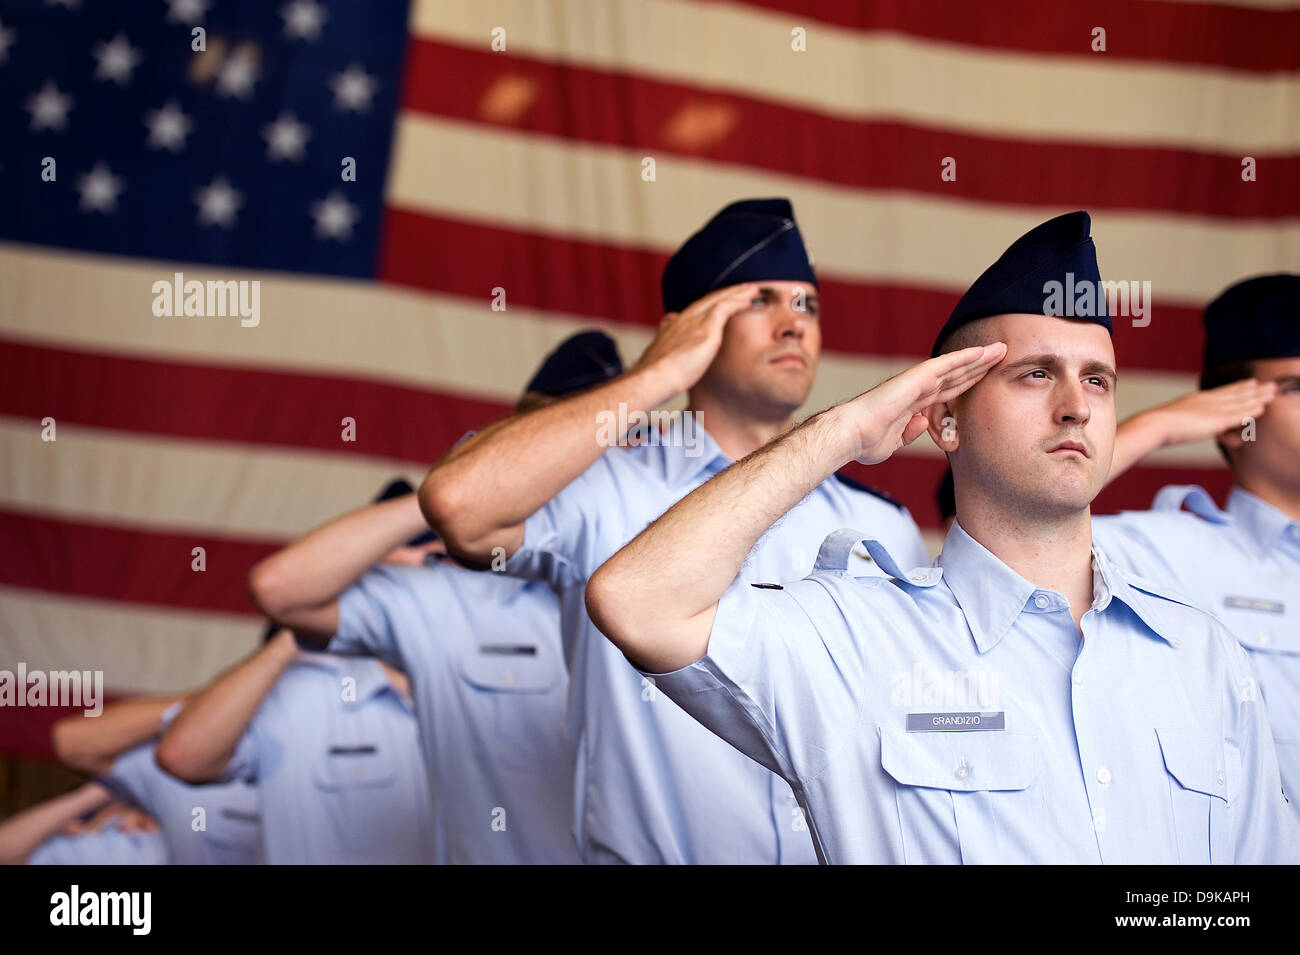 US Air Force Airmen salute to the American flag during the singing of the Star Spangled Banner a change of command - Stock Image